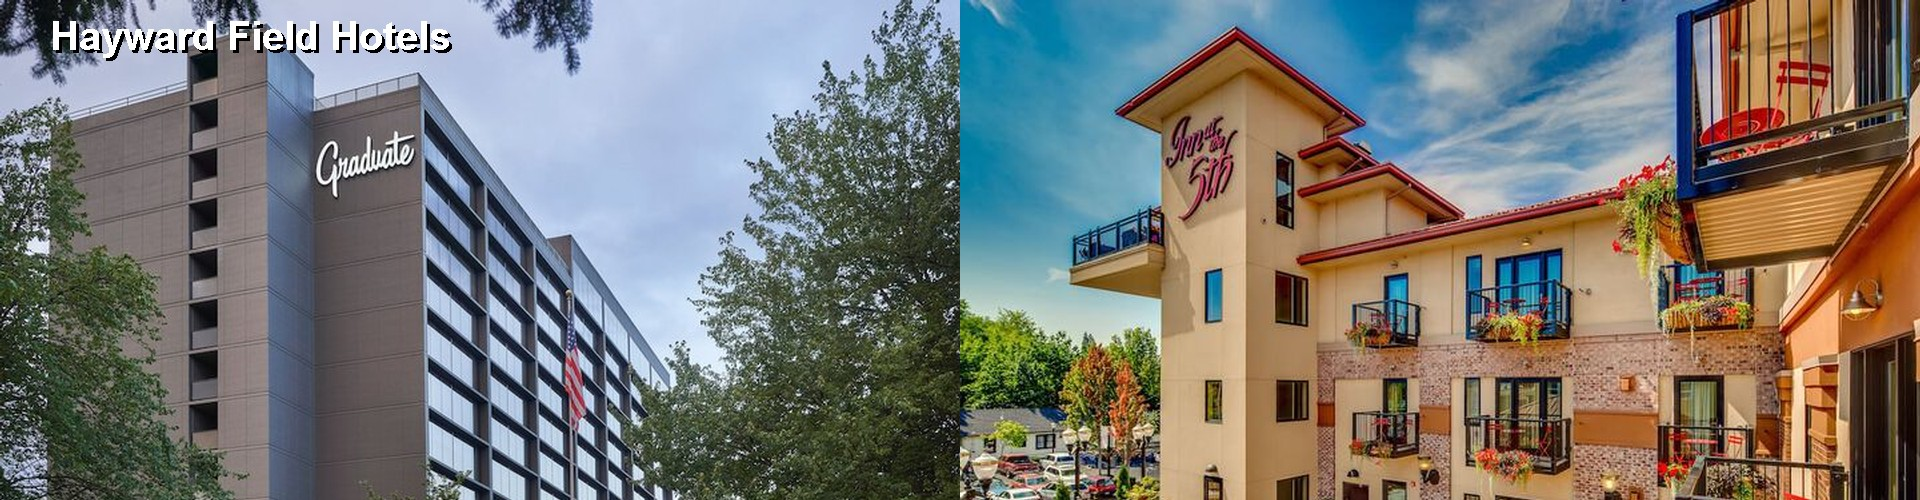 5 Best Hotels near Hayward Field